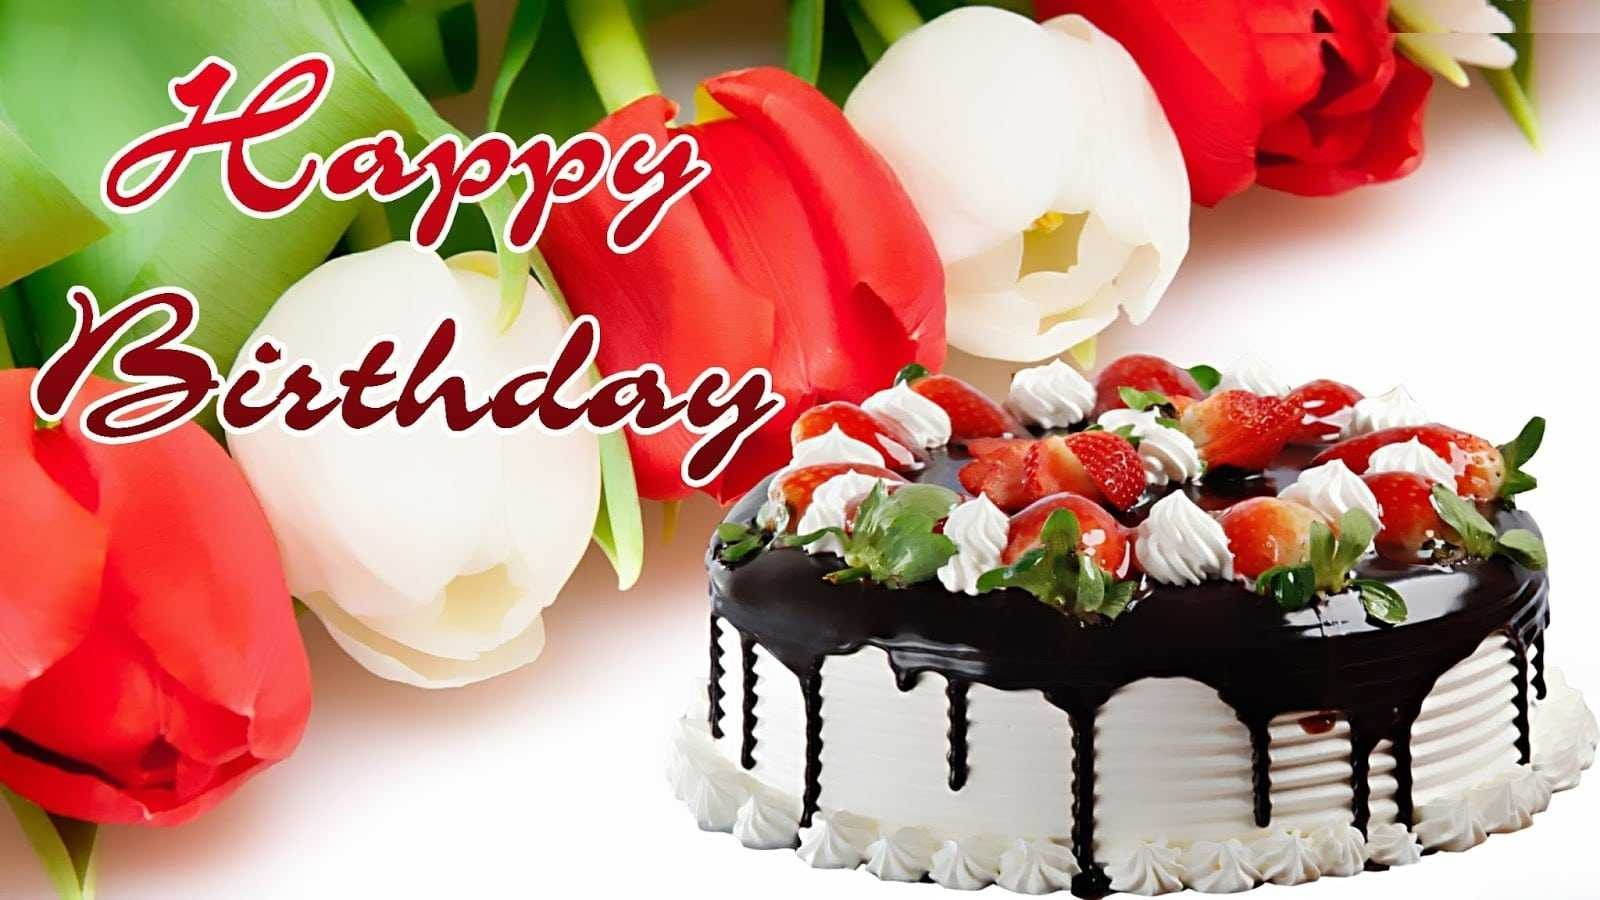 birthday pictures download ; advance-happy-birthday-wishes-hd-free-download-happy-birthday-wishes-images-free-download-happy-birthday-wishes-images-free-download